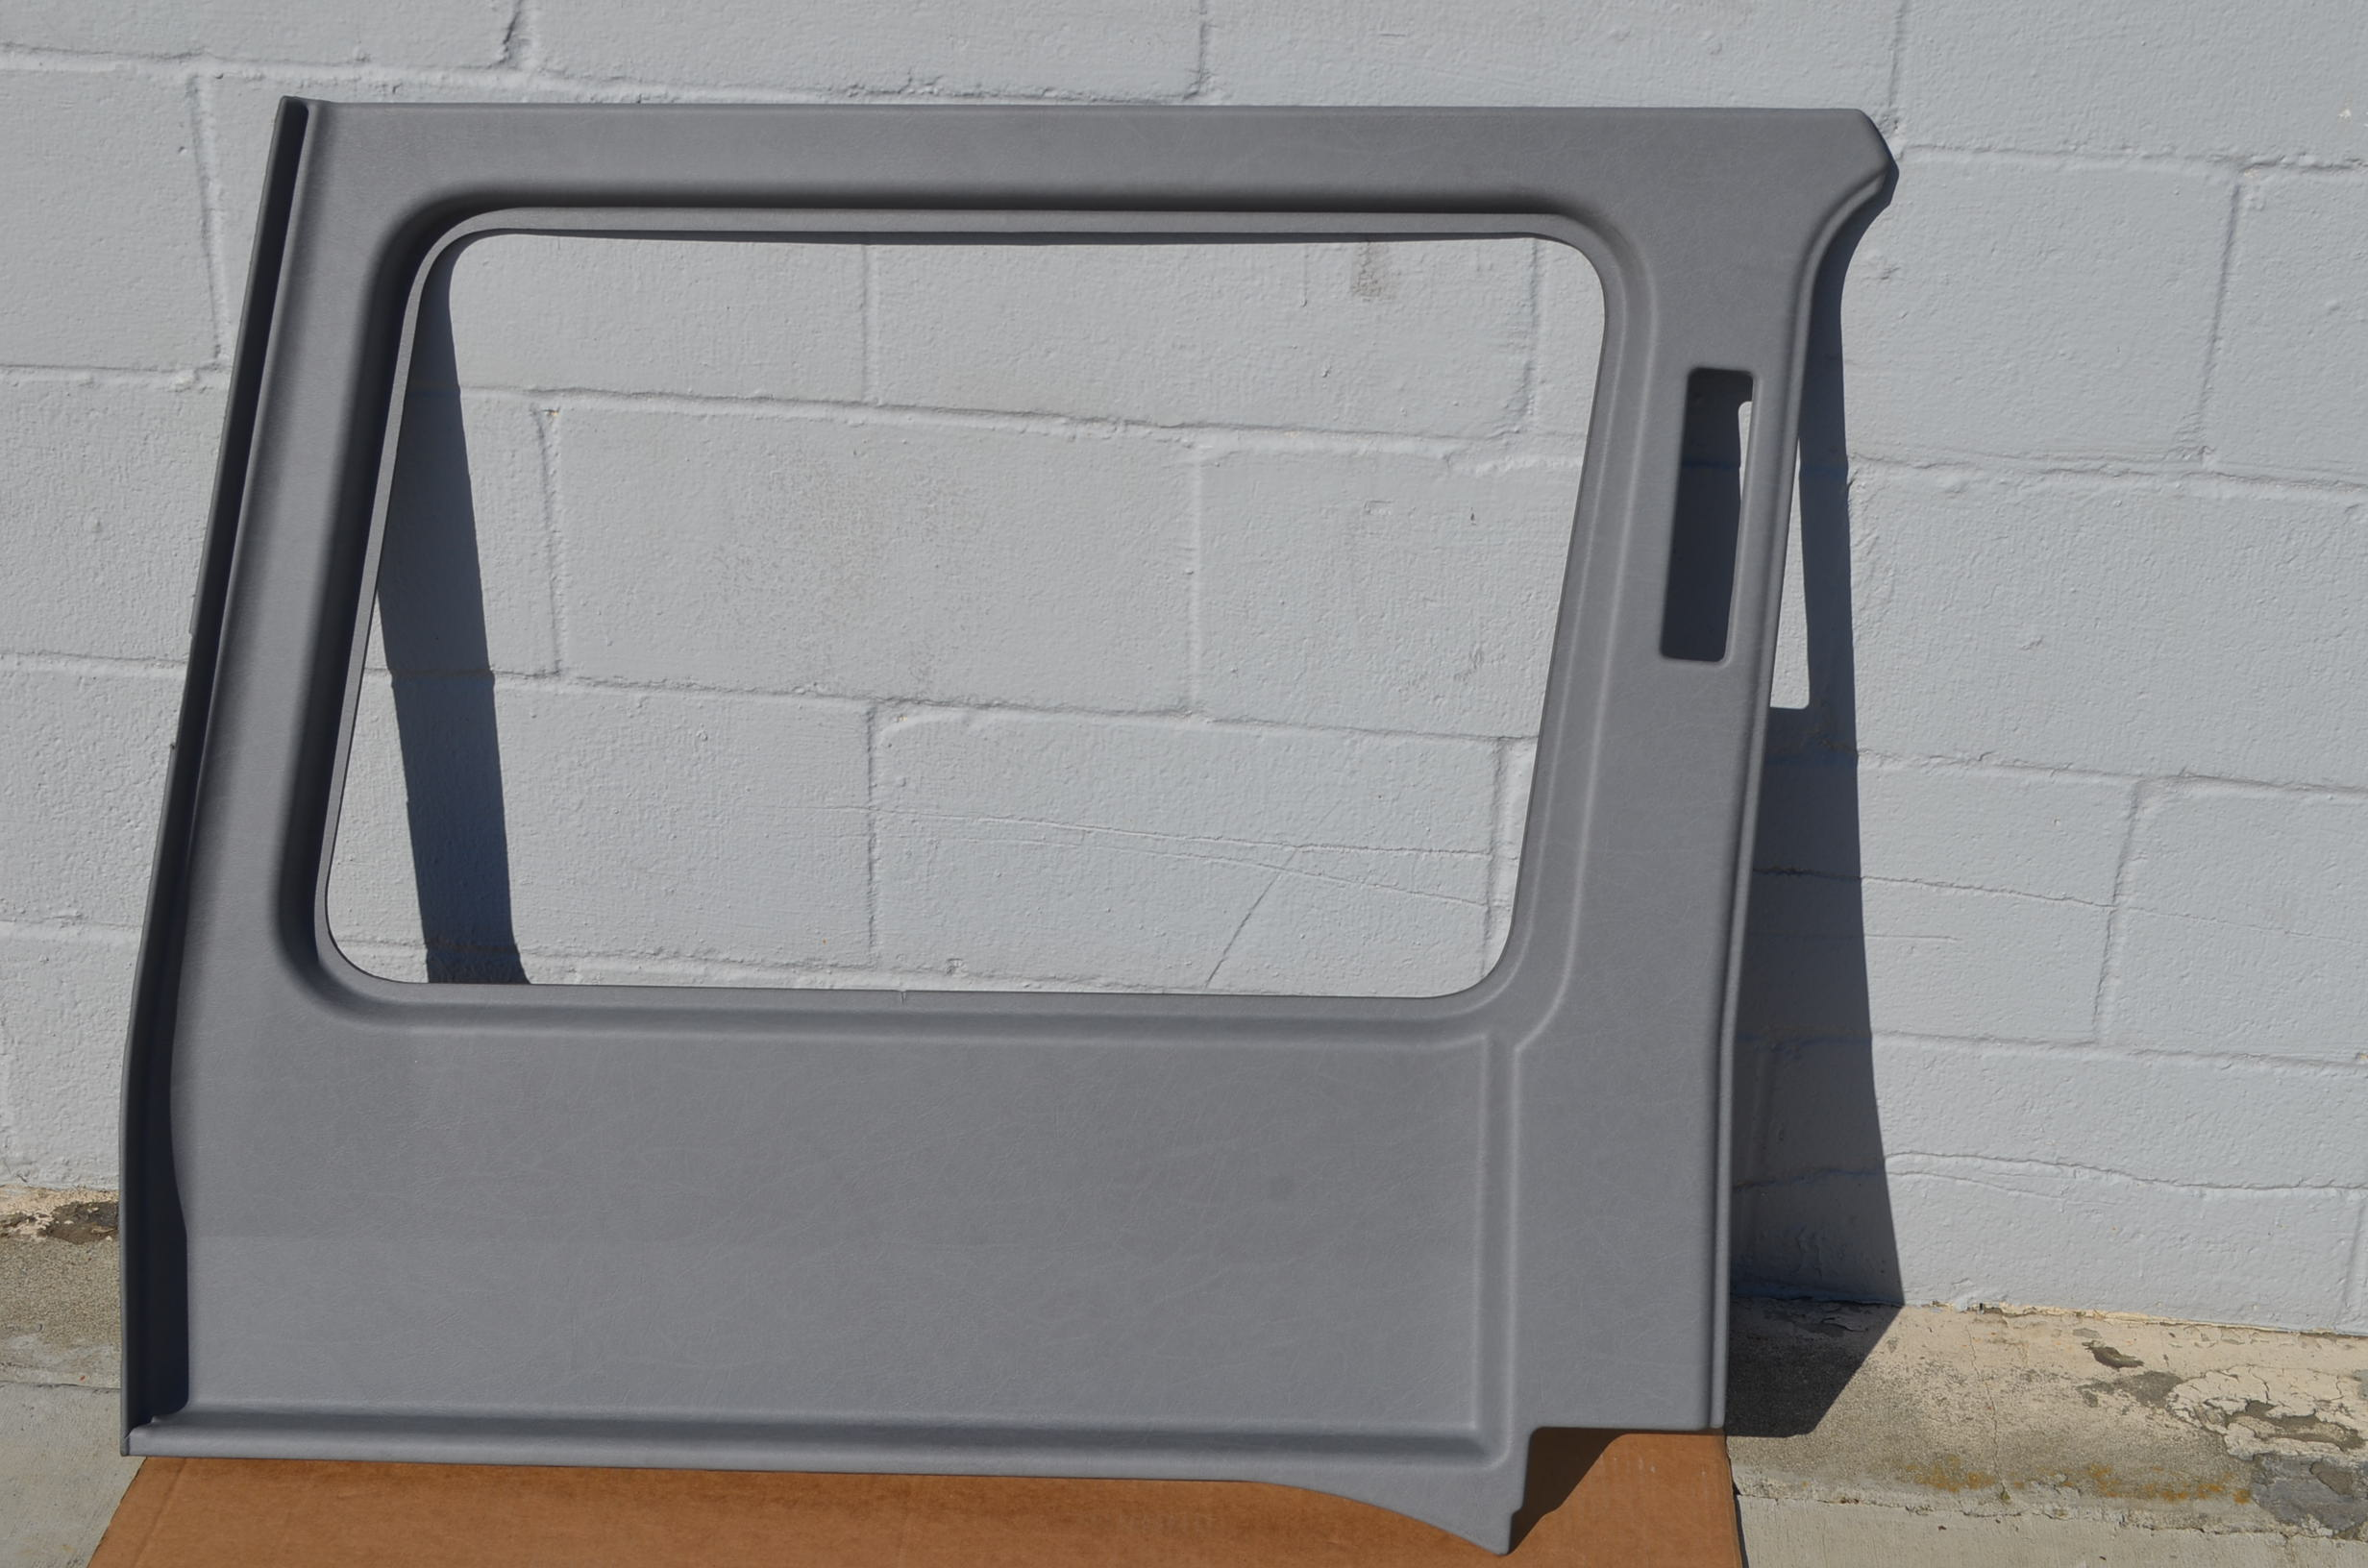 UPPER REAR SIDE PANEL - LWB - LEFT - BLACK